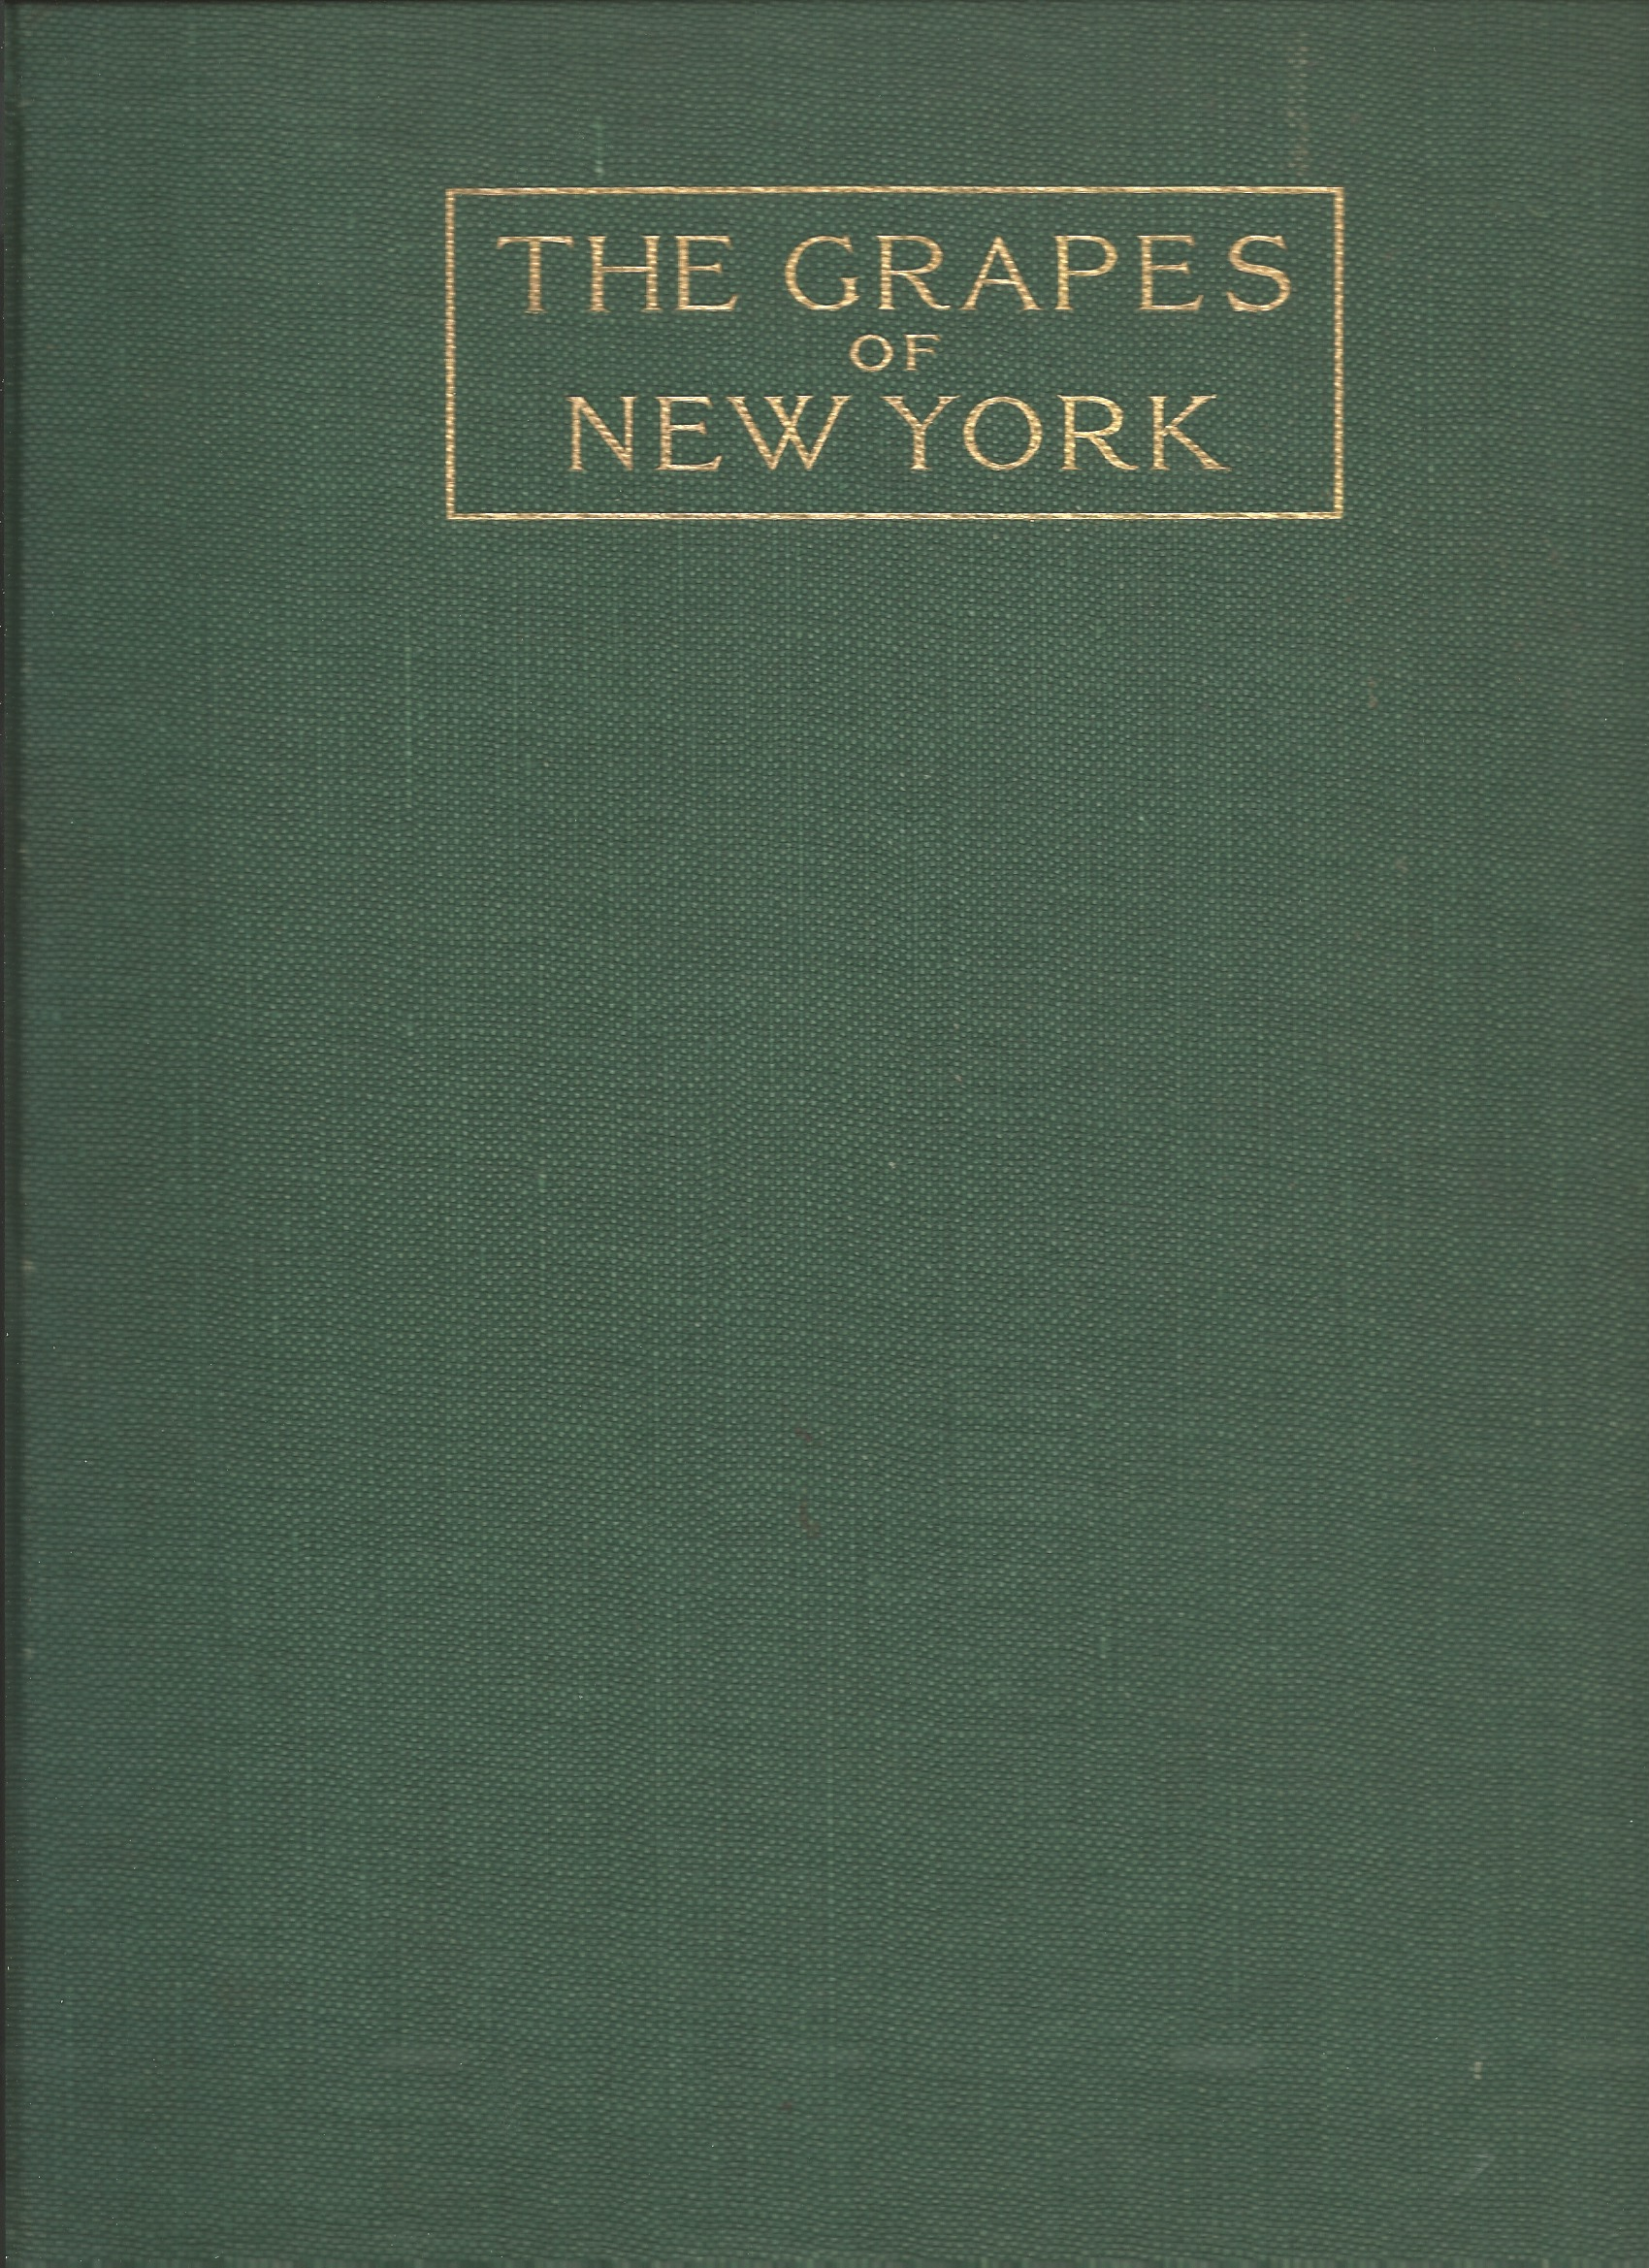 Image for THE GRAPES OF NEW YORK : State of New York Departments of Agriculture , Fifteenth Annual Report , Vol. 3 Part II .